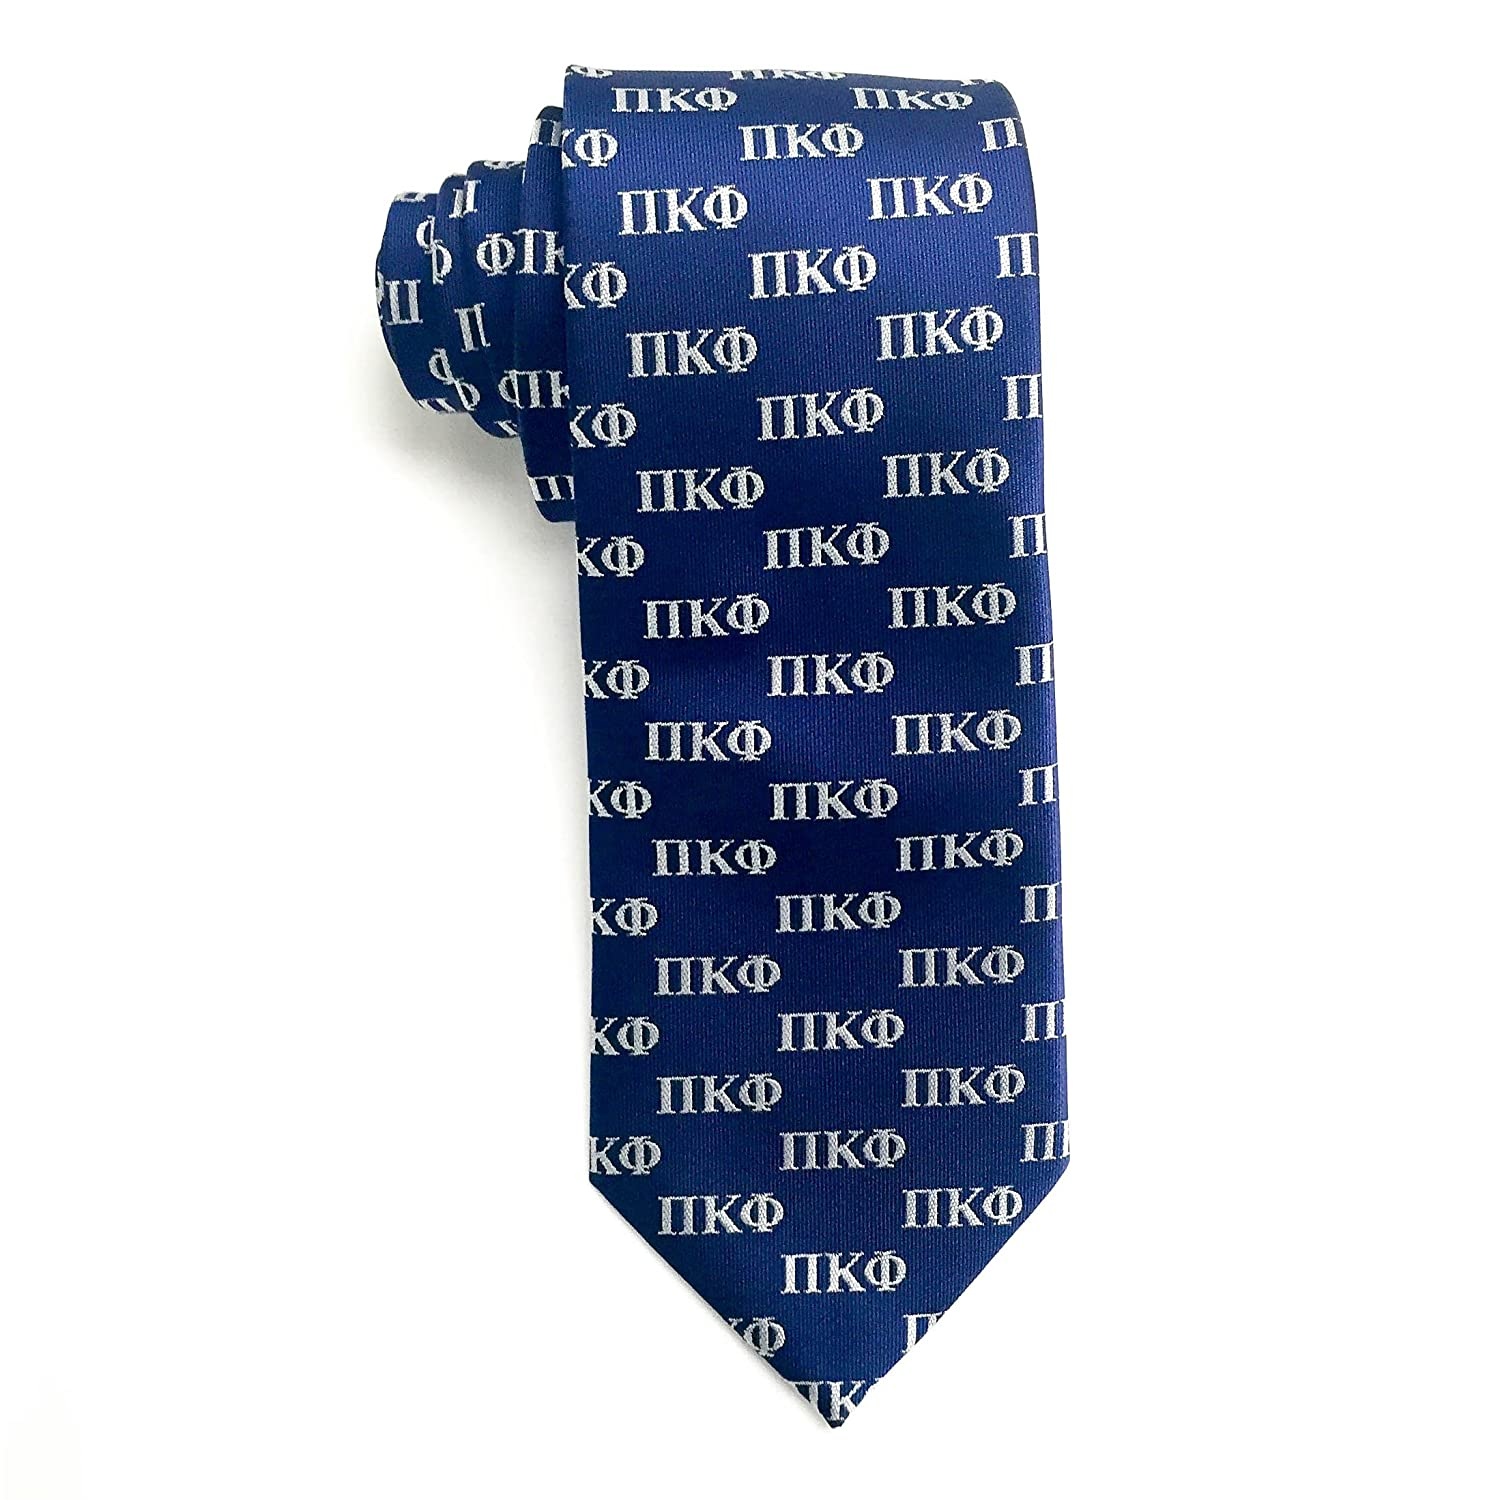 Pi Kappa Phi Letter Design Tie At Amazon Mens Clothing Store